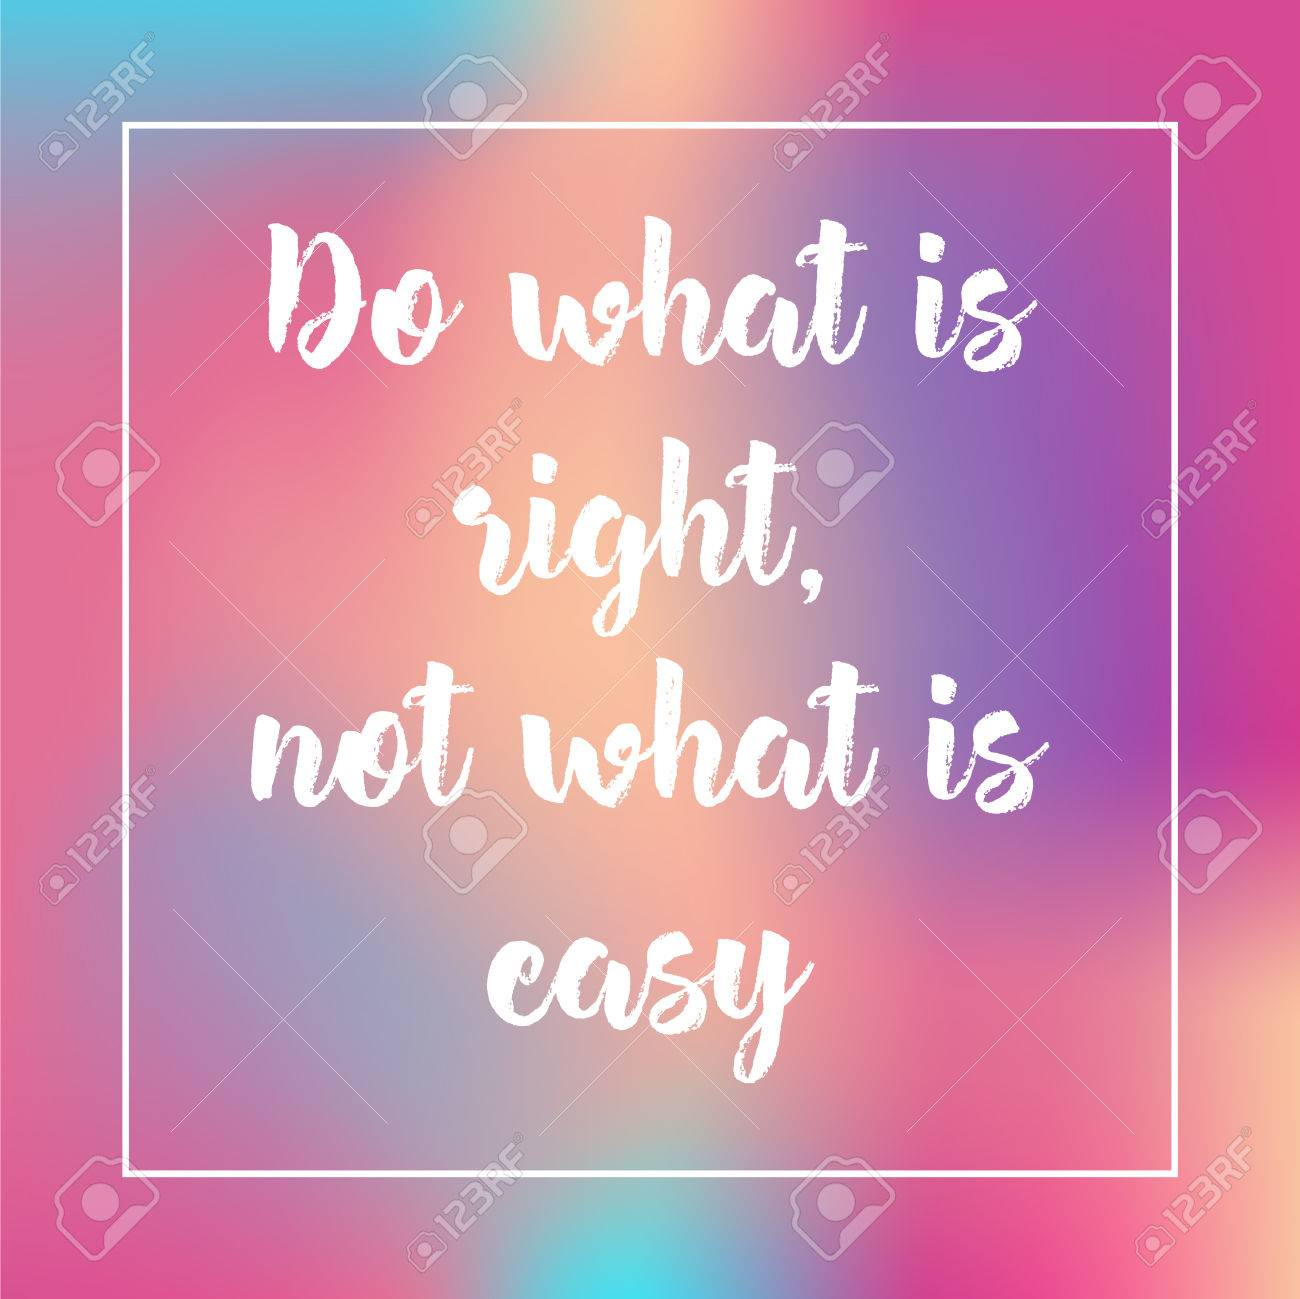 Do What Is Right Not What Is Easy Inspirational Quote Motivation